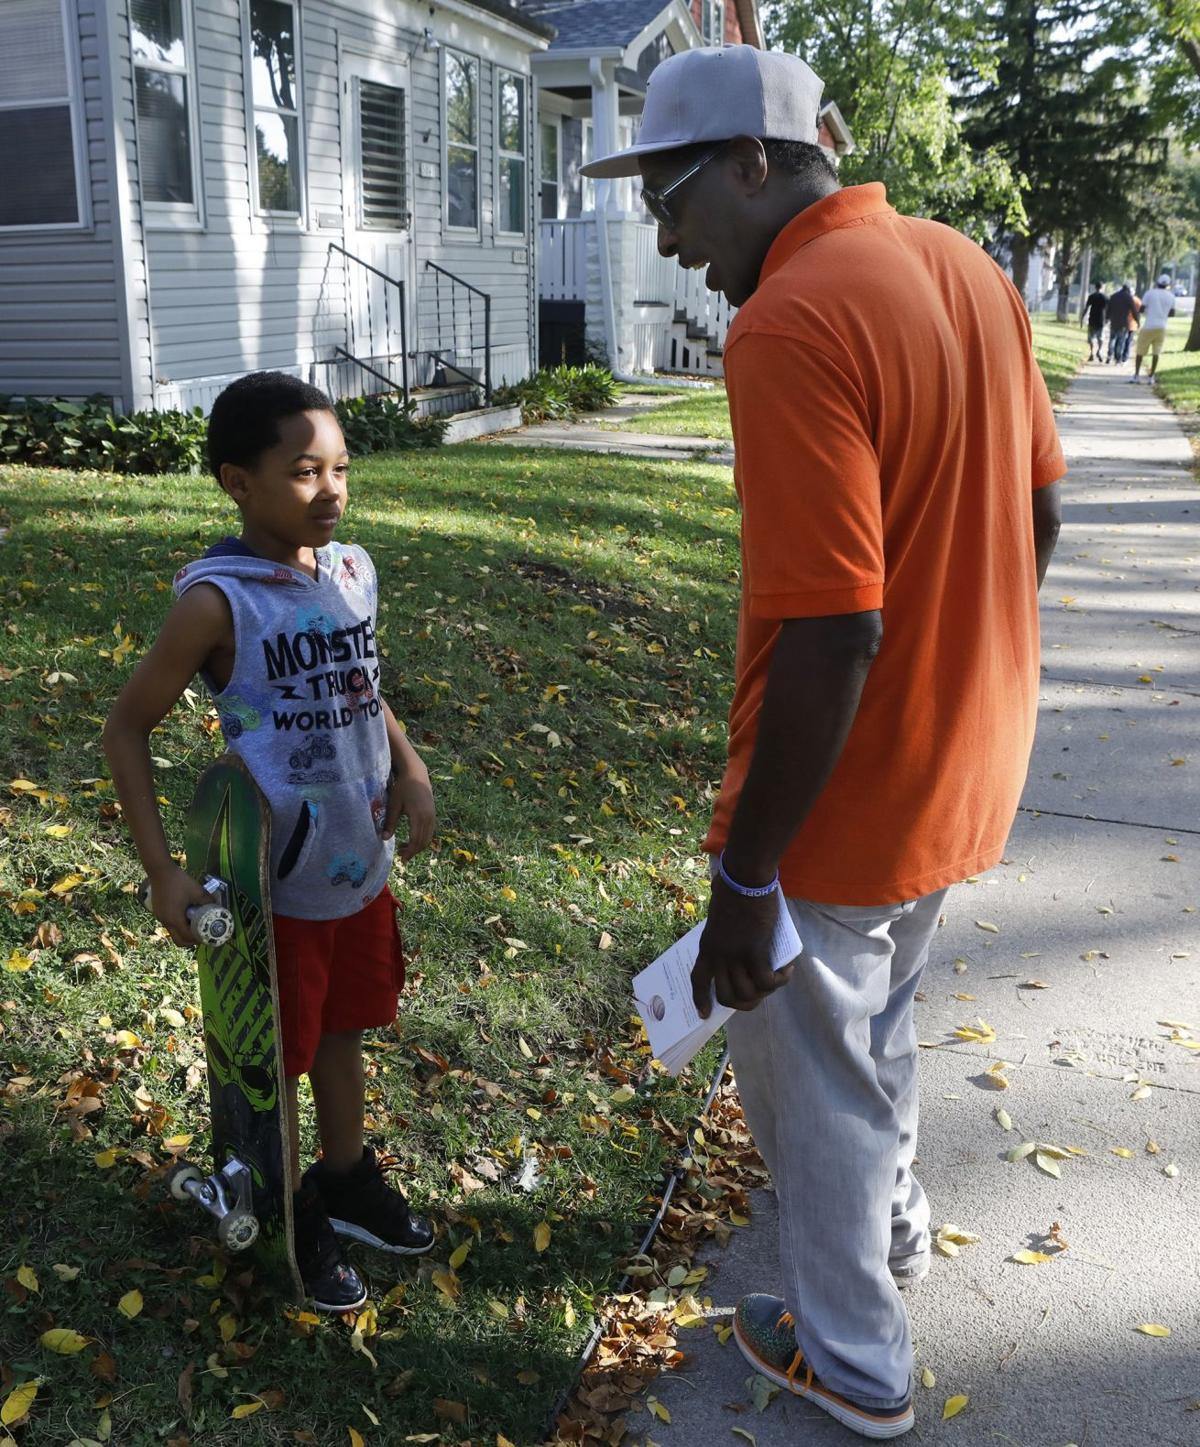 Will Milwaukee's program to cure violence work in St. Louis